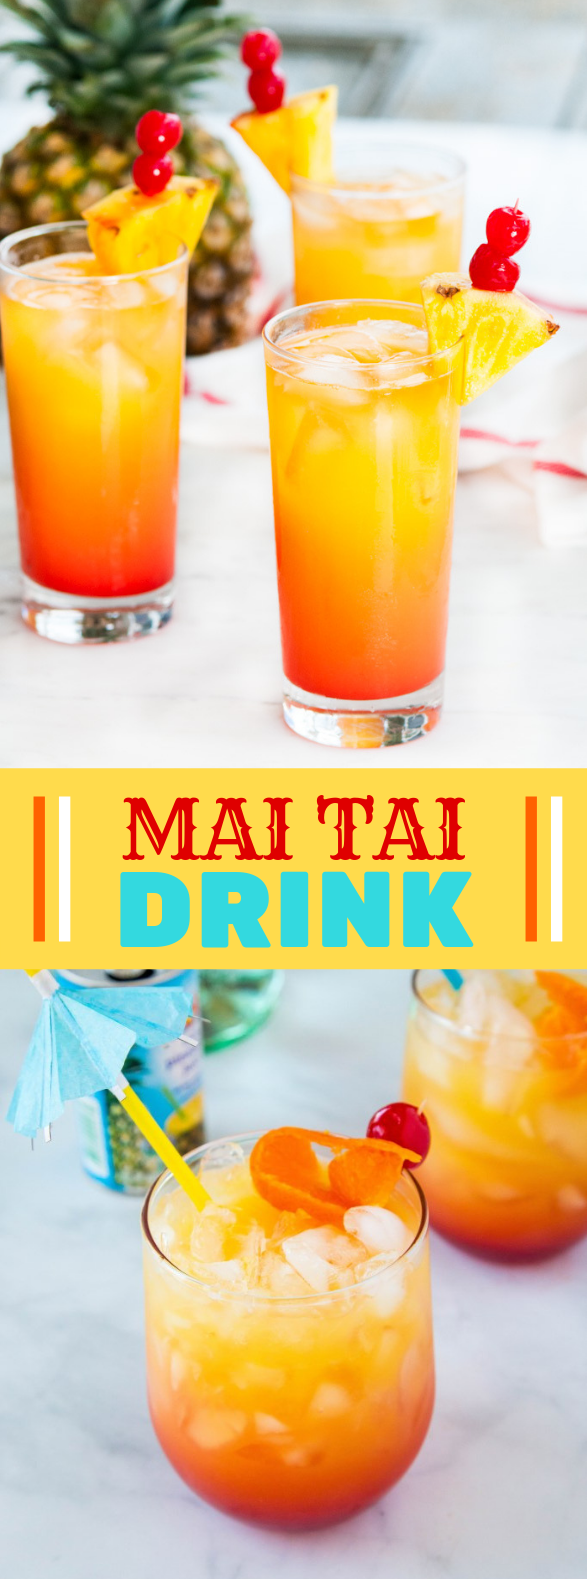 MAI TAI DRINK #mixeddrink #tropical